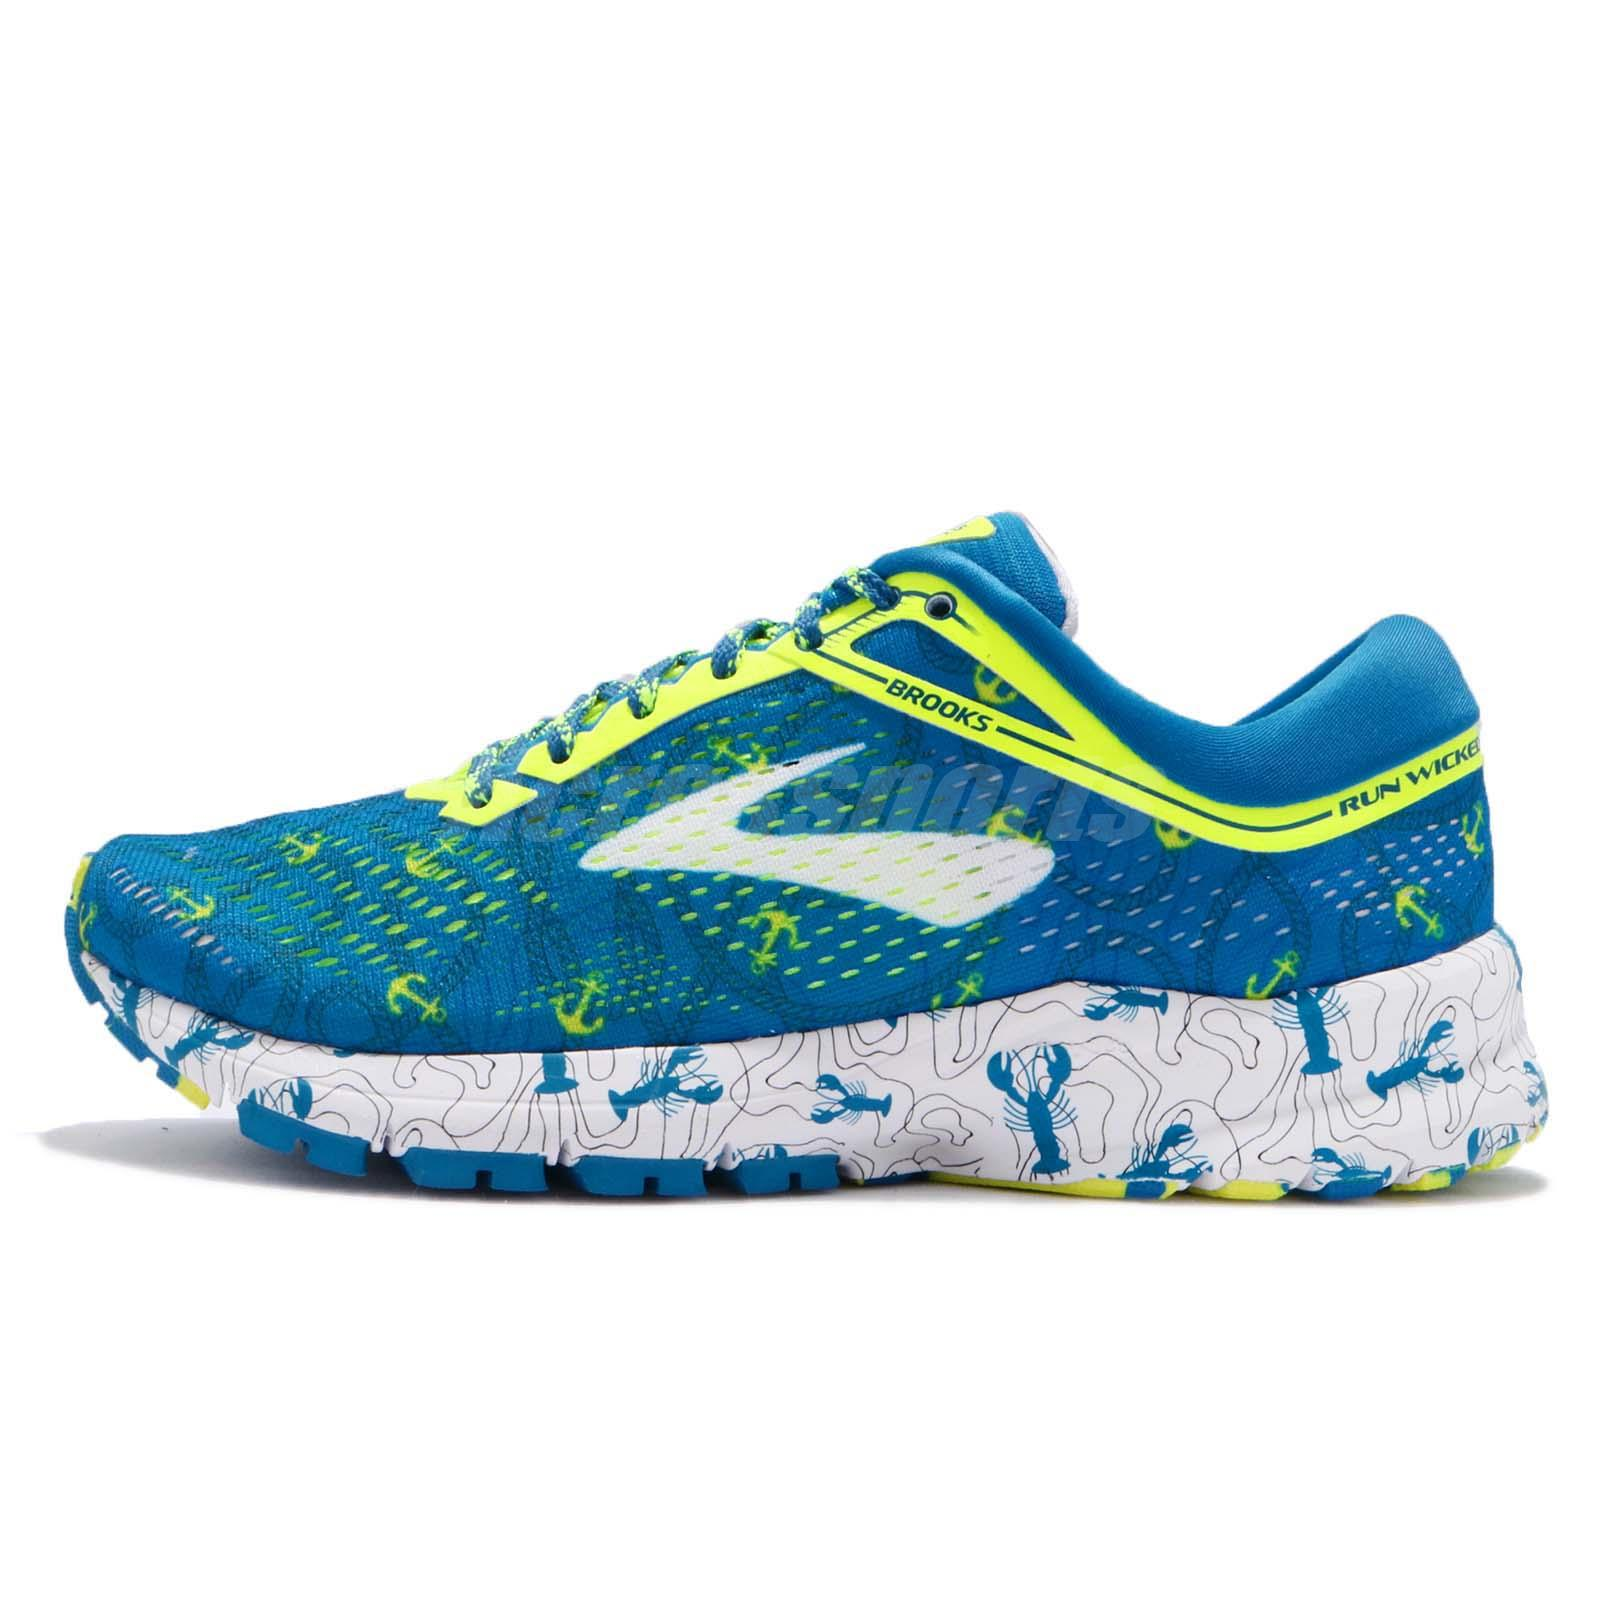 c5764f24600 Brooks Launch 5 Boston Marathon Lobster Blue Volt Women Running Shoes  120266 1B